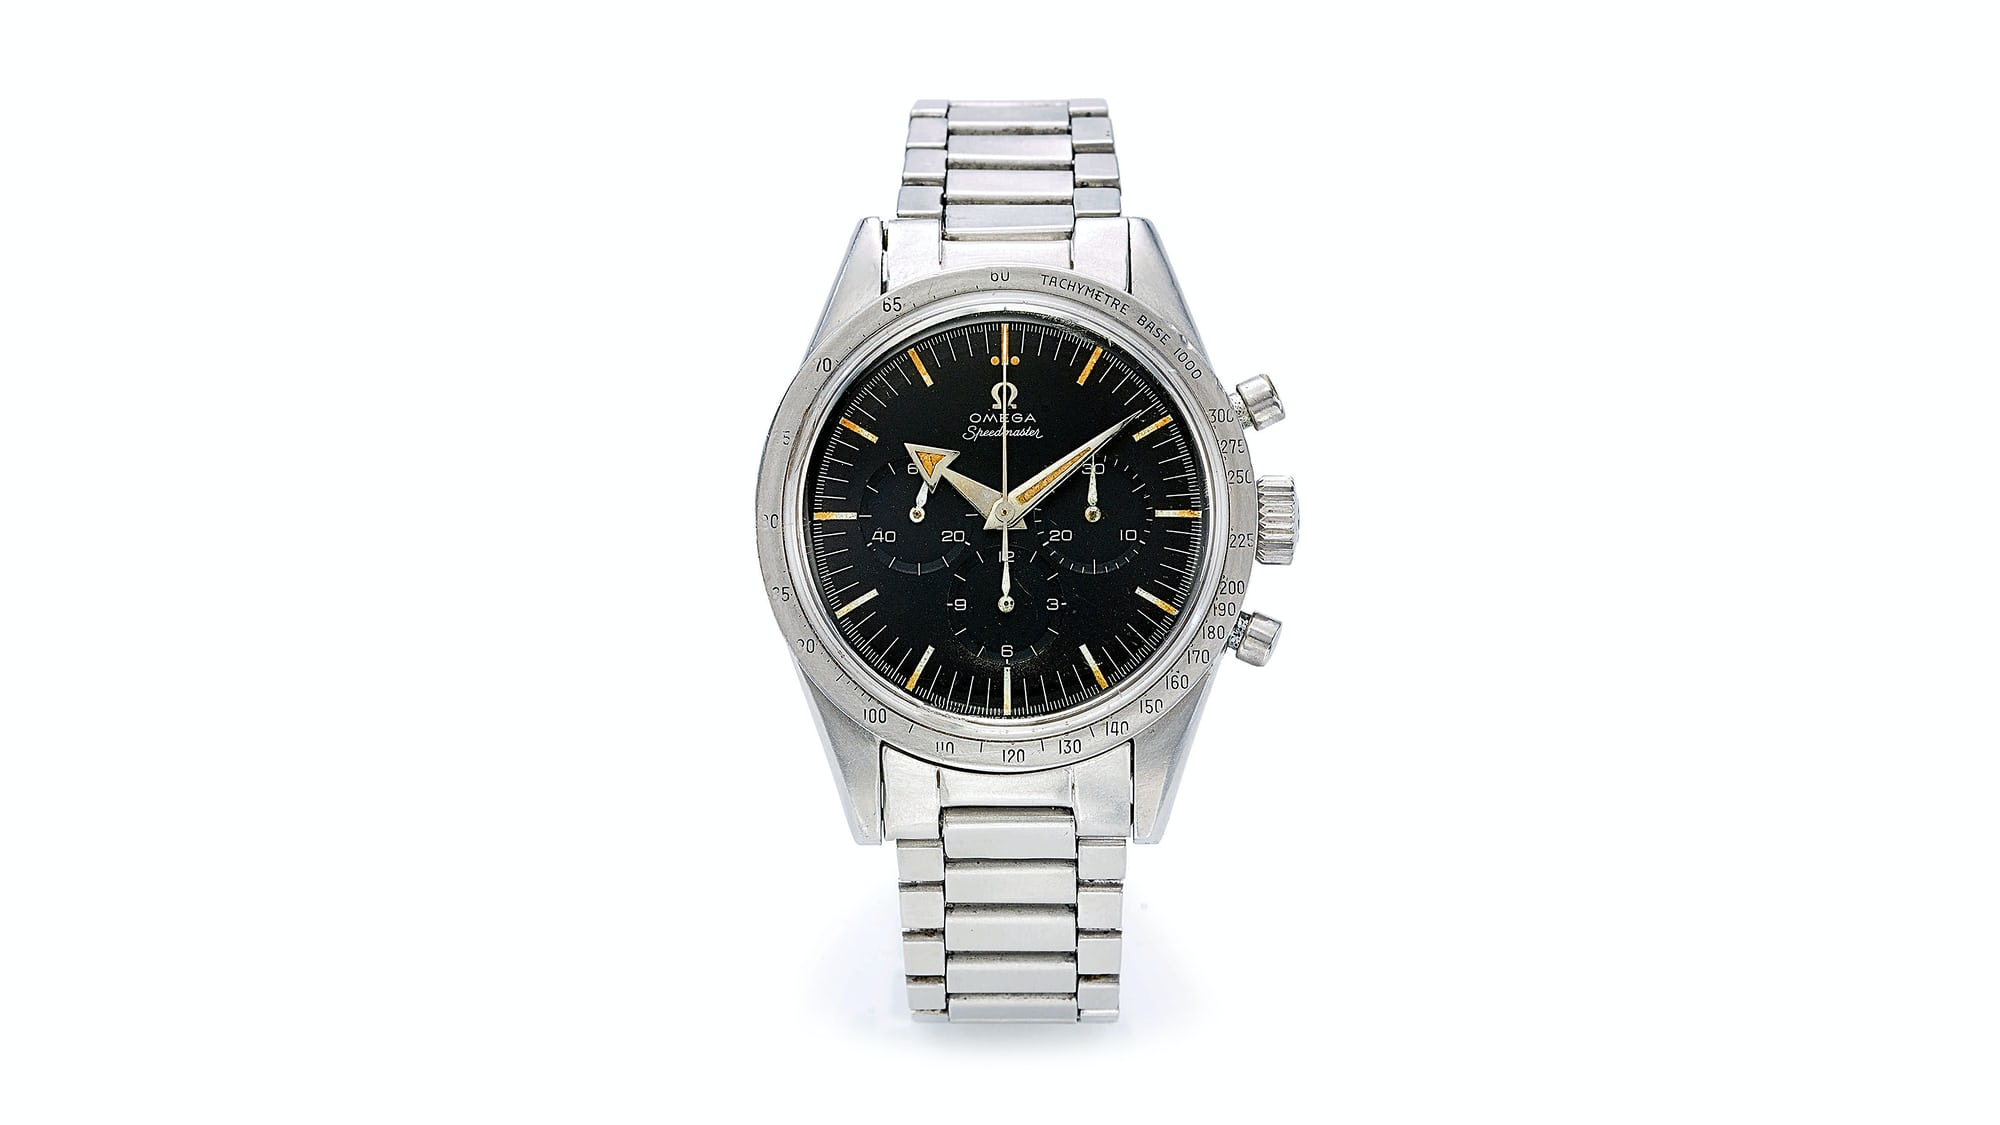 Auction Report: Sotheby's Announces Apollo 11 50th Anniversary Sale (Rare Speedmasters!)